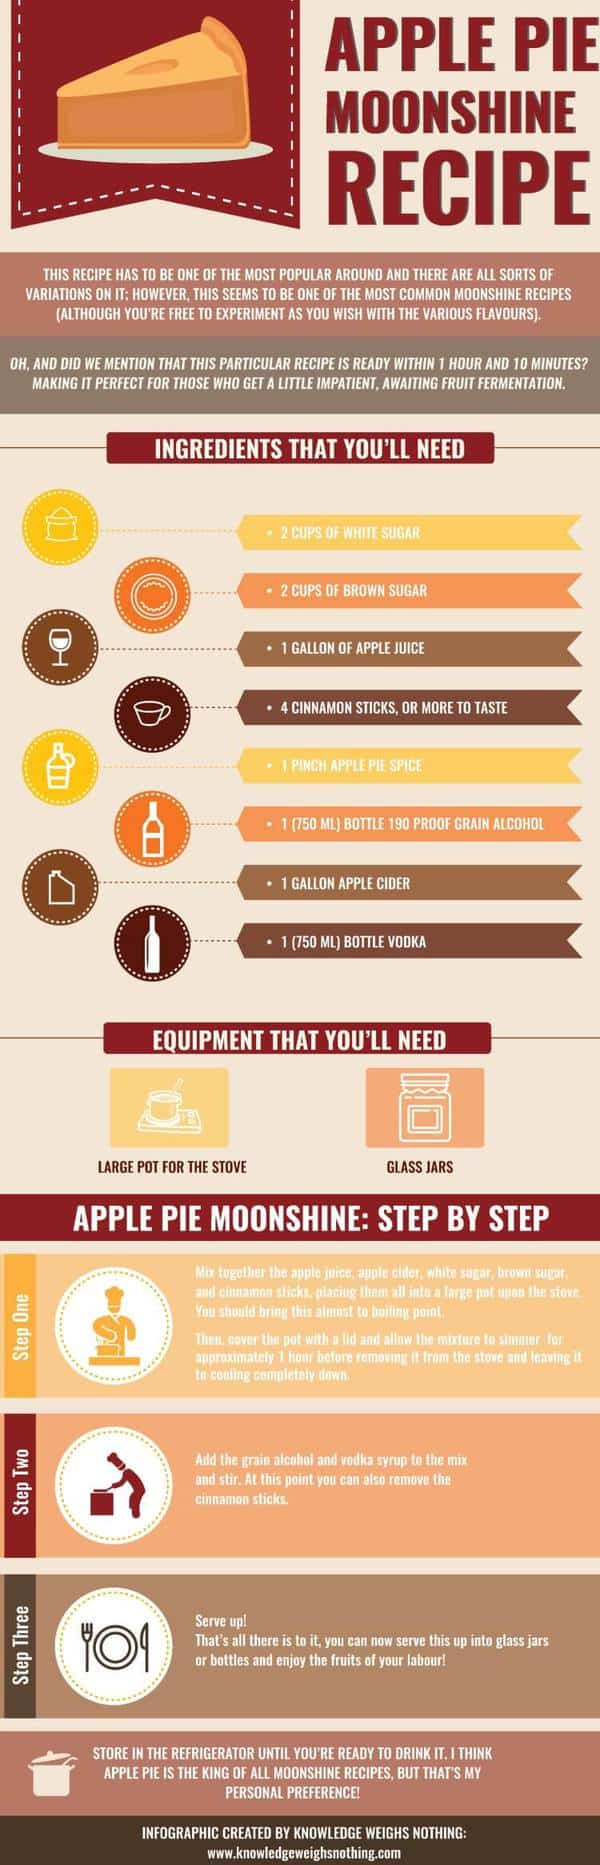 5 Moonshine Recipes Youll Be OverTheMoon About